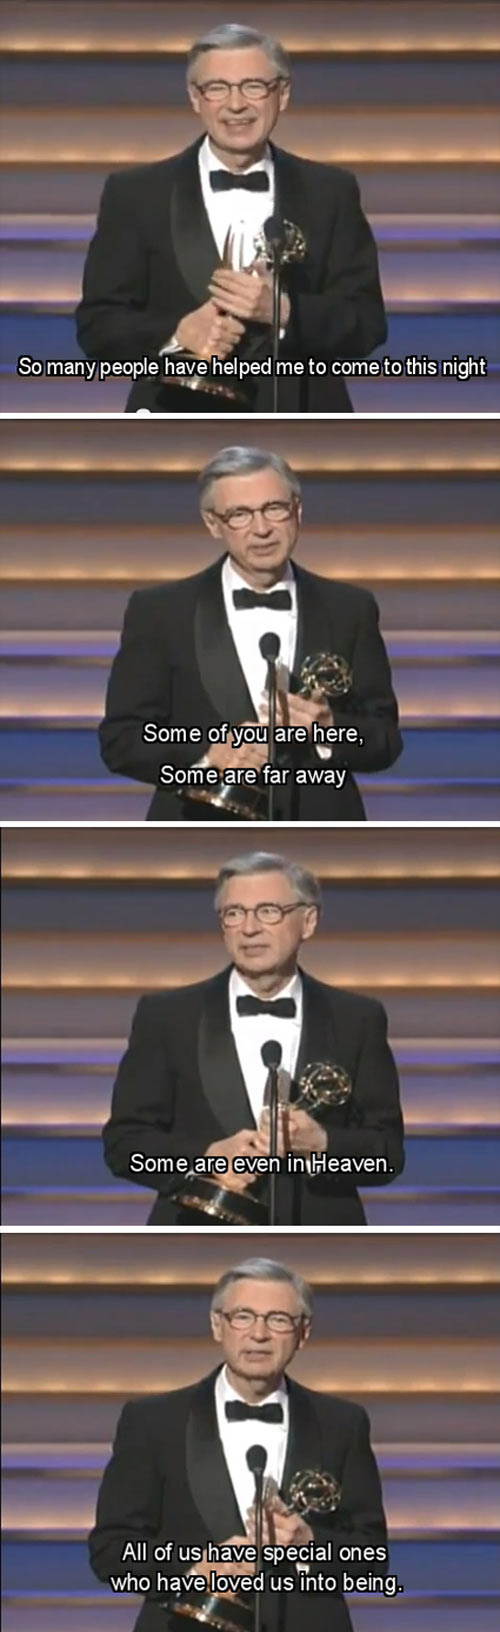 Thank you for accepting me into your neighborhood, Mr. Rogers...